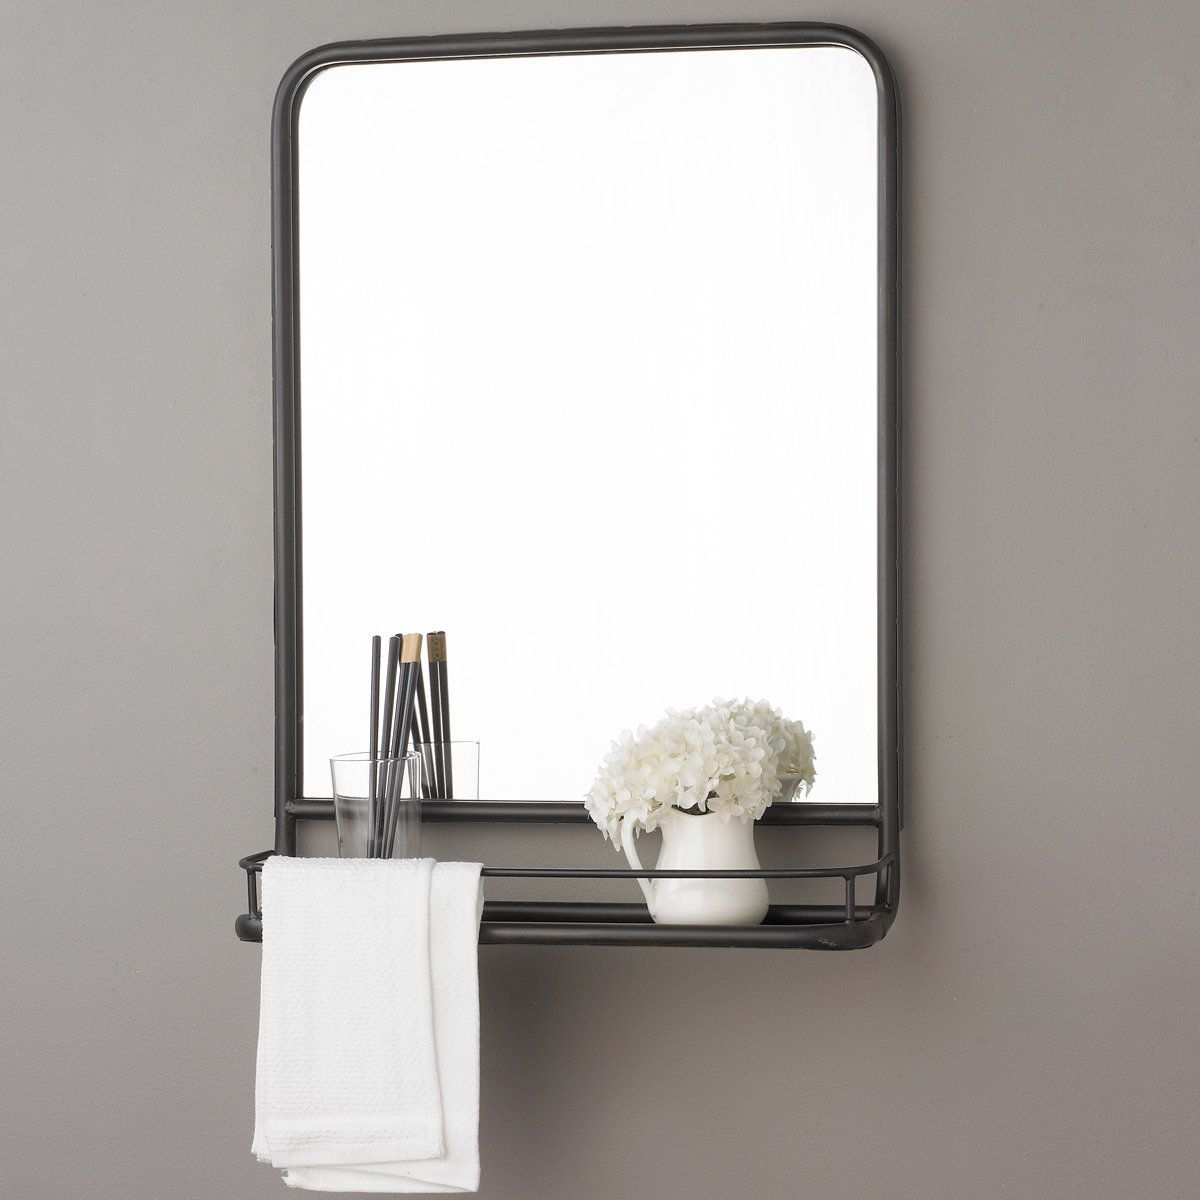 Metal Mirror With Shelf Small In 2021 Bathroom Mirror With Shelf Mirror With Shelf Bathroom Mirrors Diy